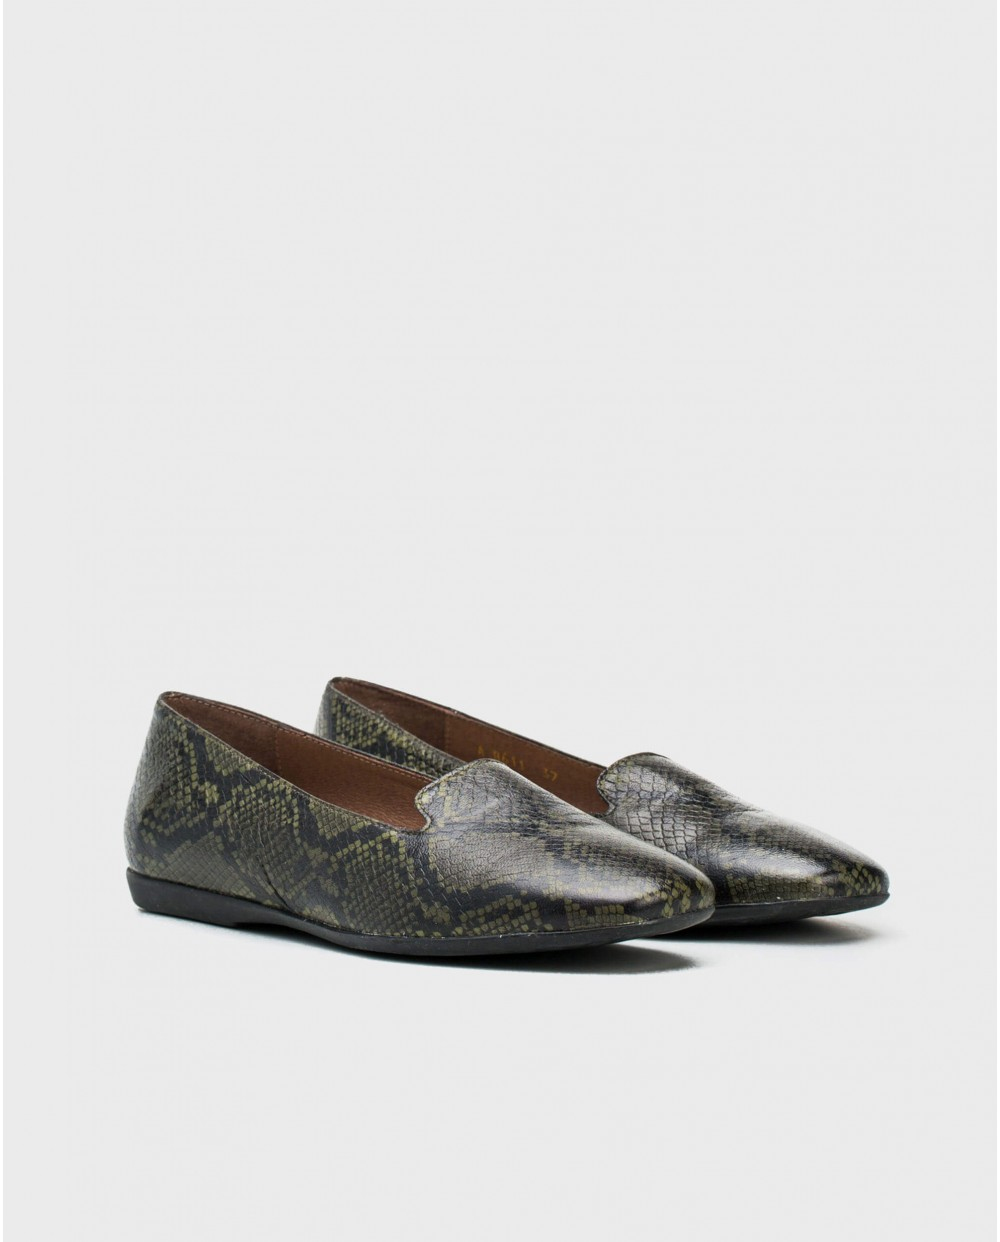 Wonders-Flat Shoes-leather snake print ballet pump